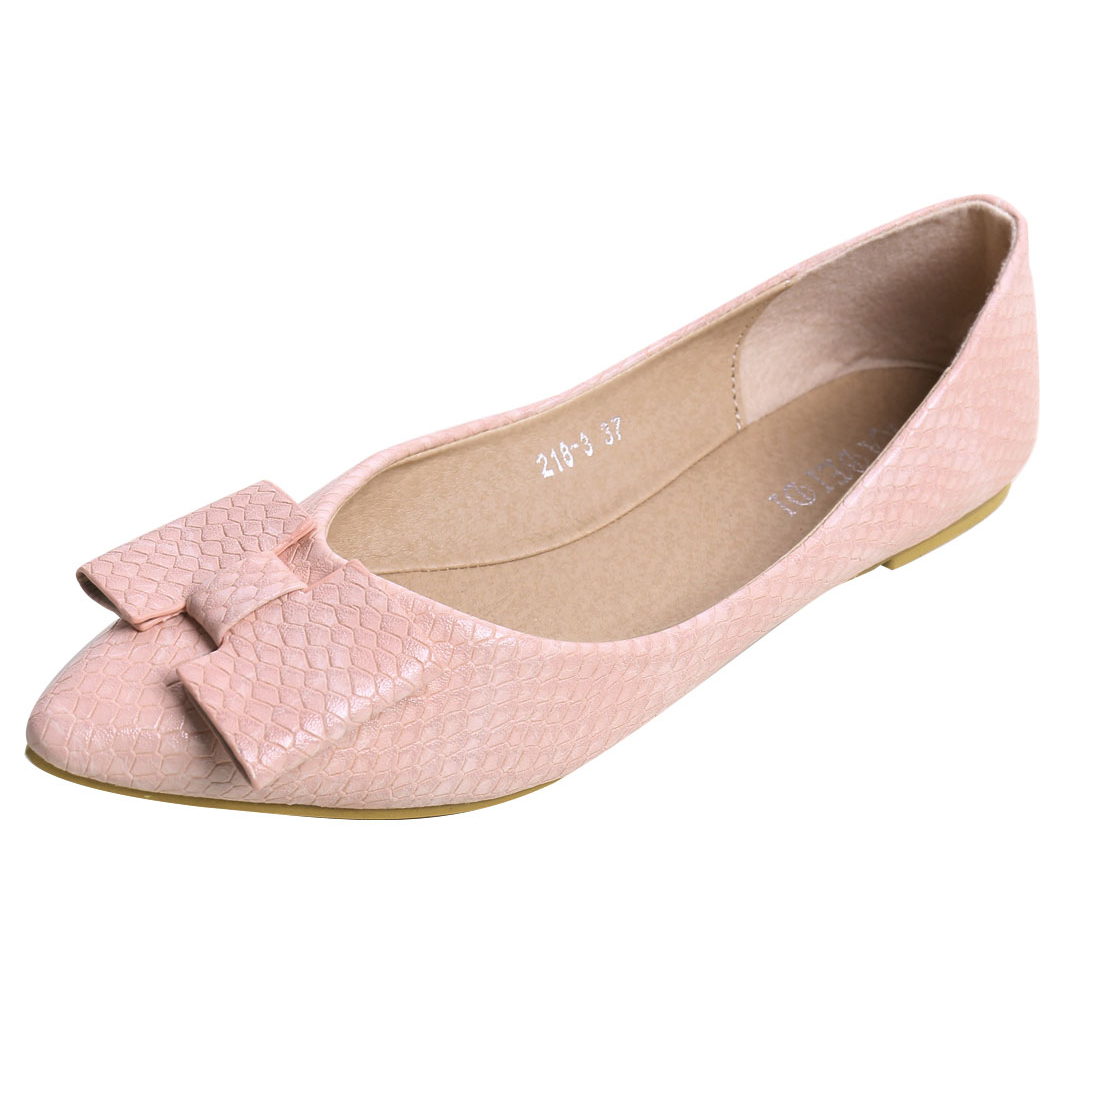 Women Pointed Toe Snake-effect Faux Leather Bow Flats Pink US 6.5